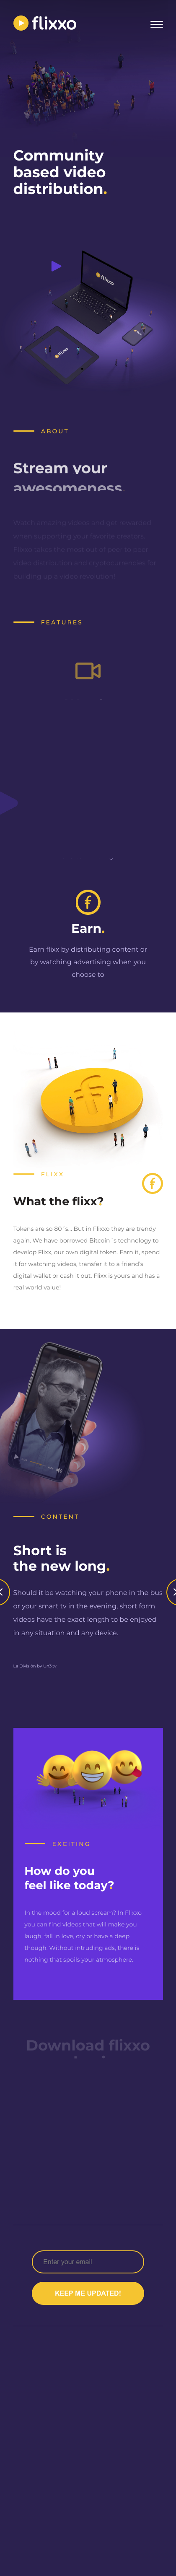 Example of Design for Arts & Entertainment, Online Media, Mobile Landing Page by flixxo.com | Mobile Landing Page Design